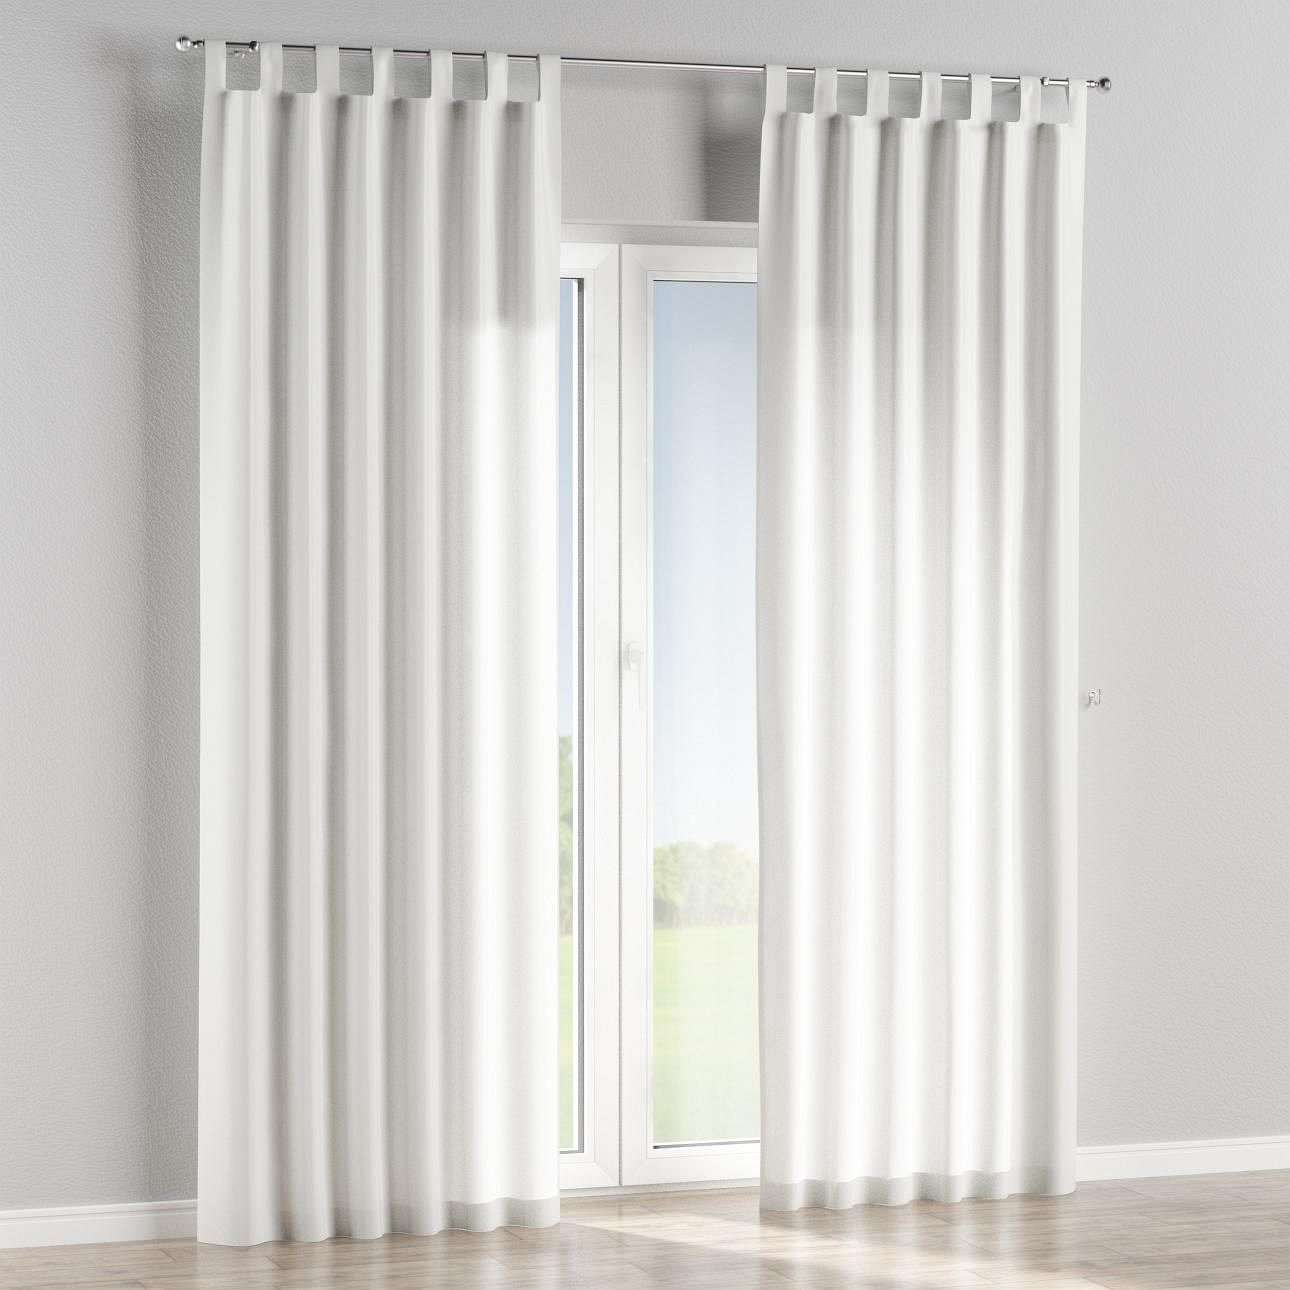 Tab top curtains in collection Ashley, fabric: 137-49